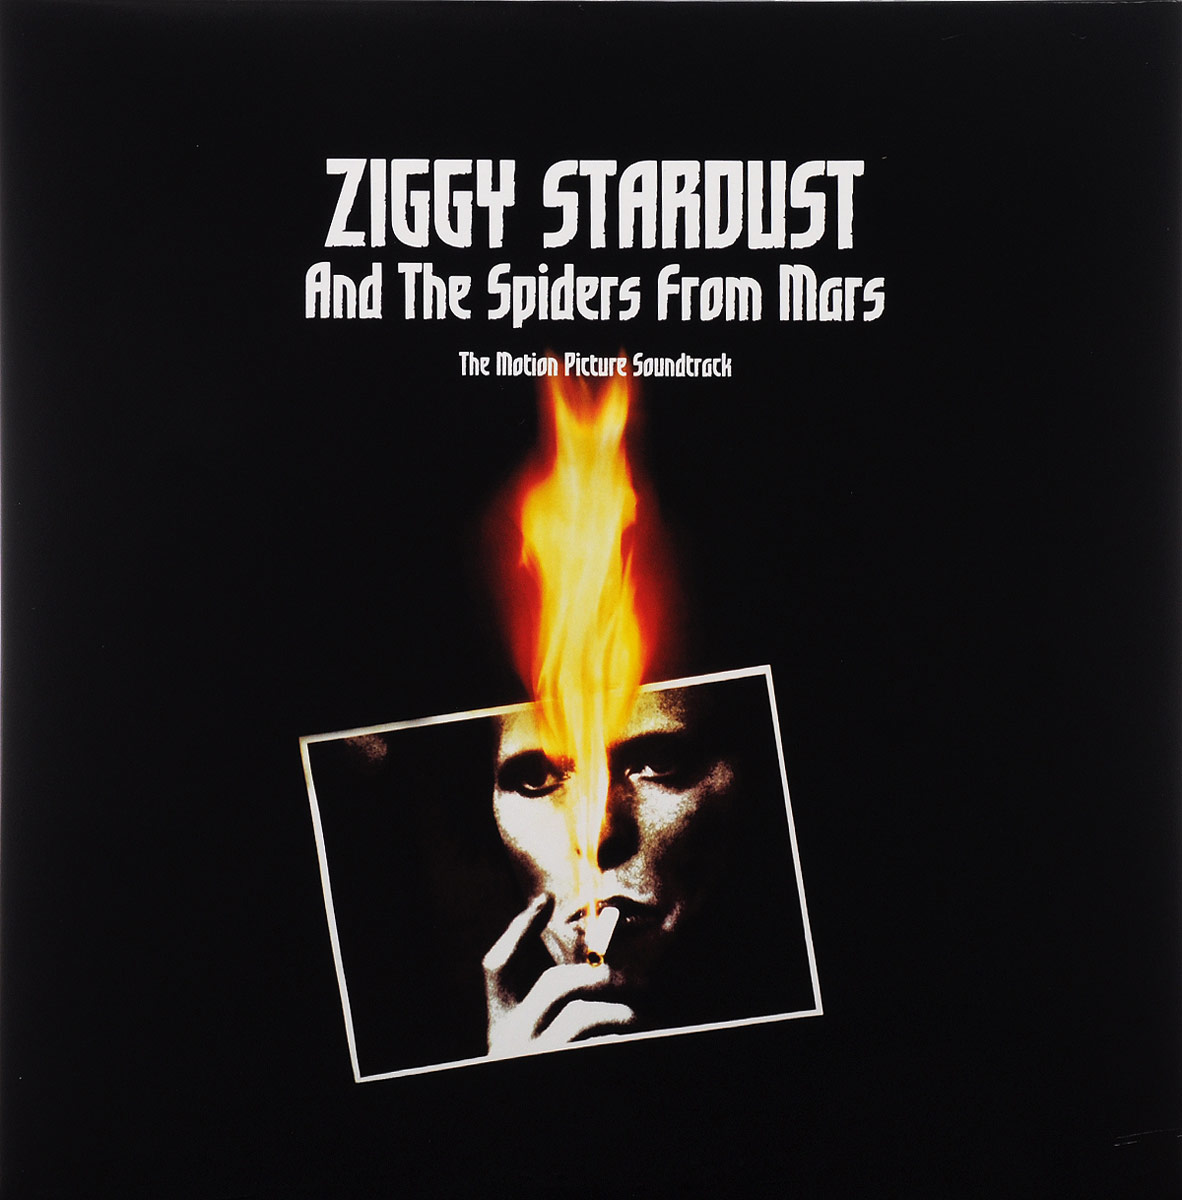 Дэвид Боуи Ziggy Stardust And The Spiders From Mars The Motion Picture Soundtrack (2 LP) the spiders from arts футболка